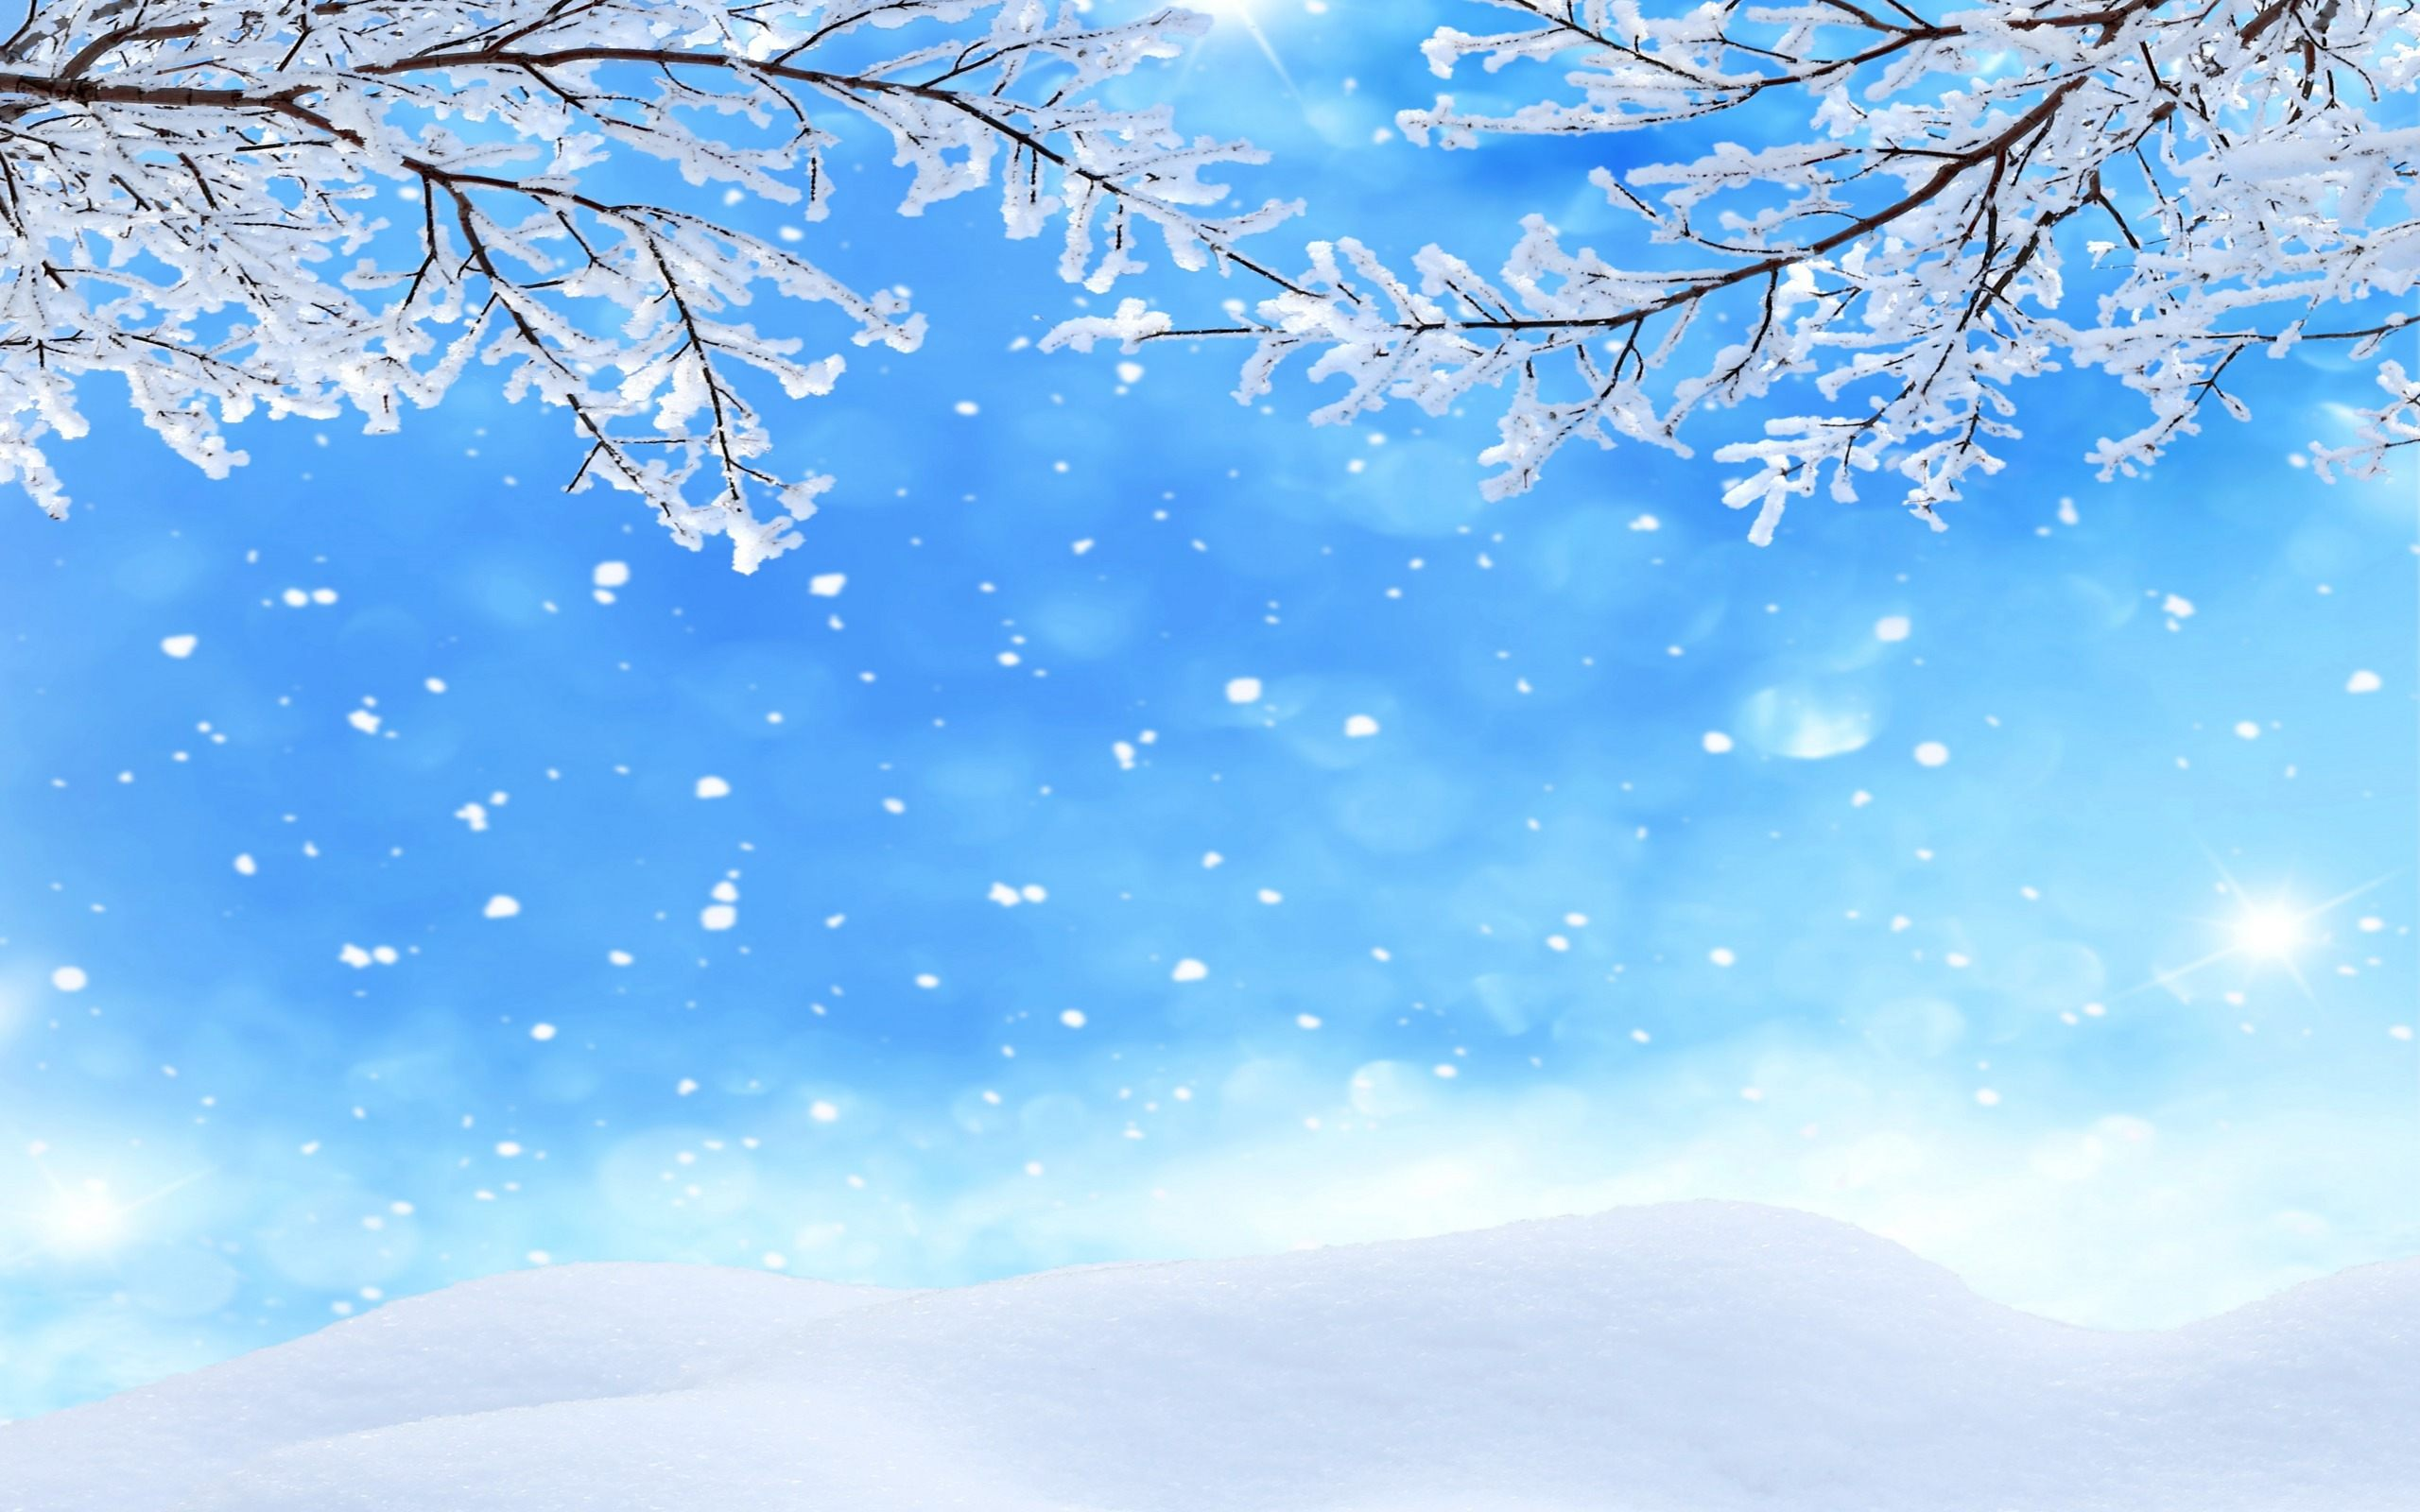 winter background clipart 2560x1600